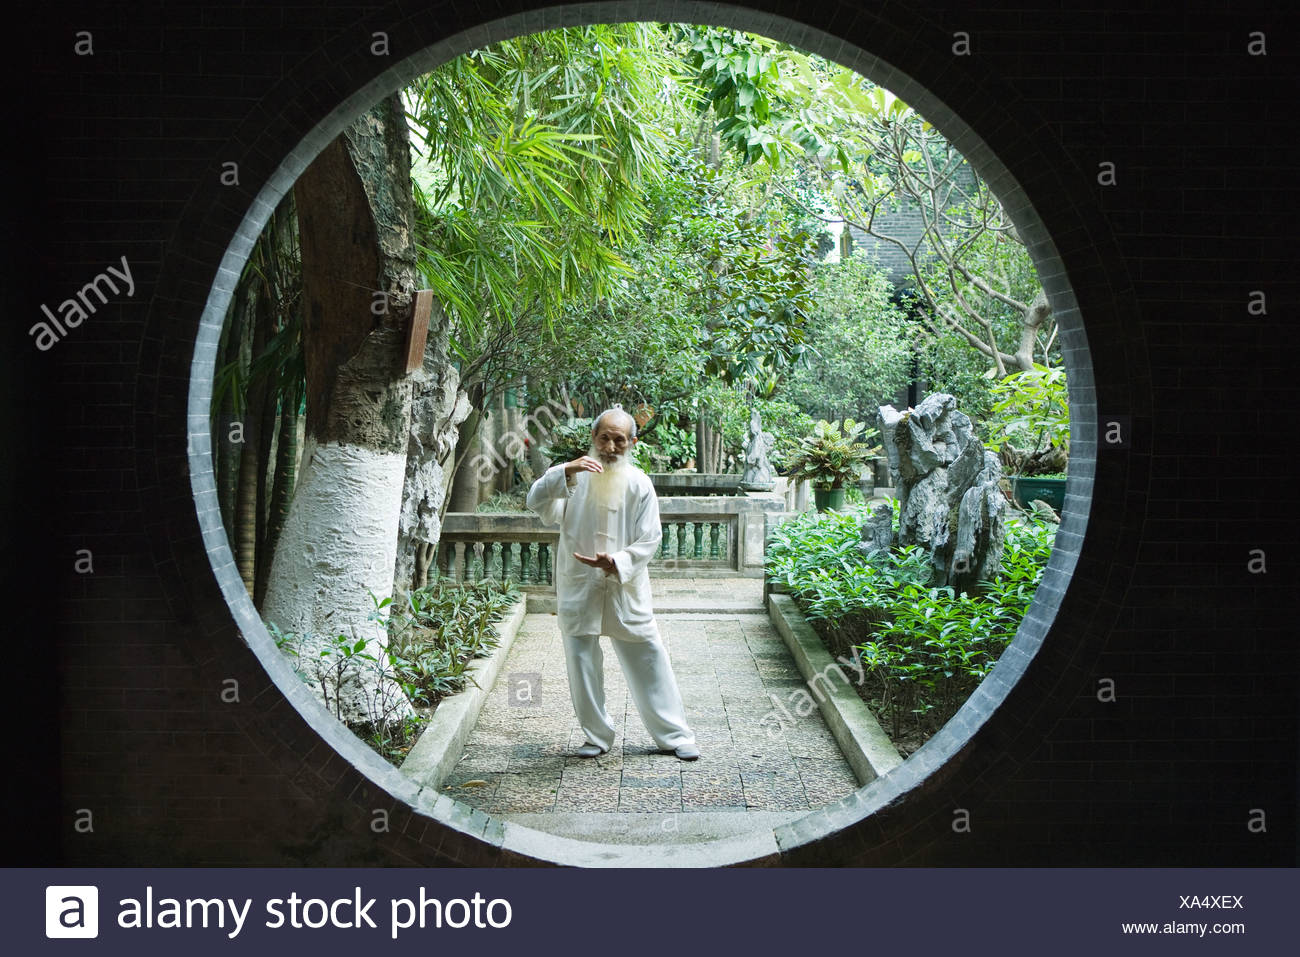 Elderly man wearing traditional Chinese clothing doing Tai Chi - Stock Image